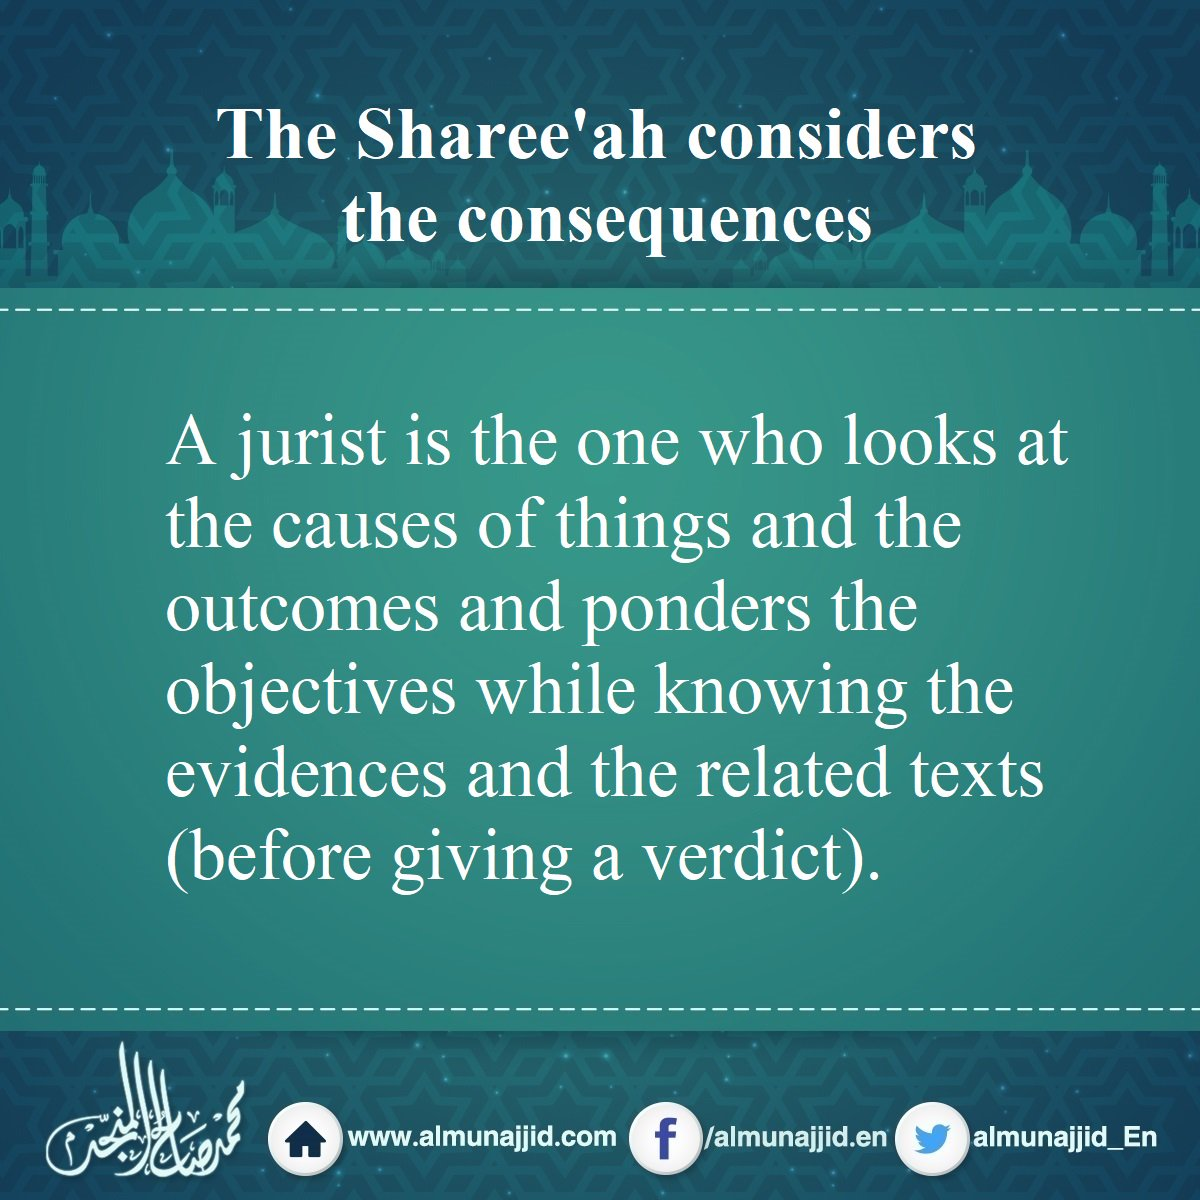 The Sharee&#39;ah considers the consequences   #consequences #evidence #text <br>http://pic.twitter.com/Hbdxnu28Oo